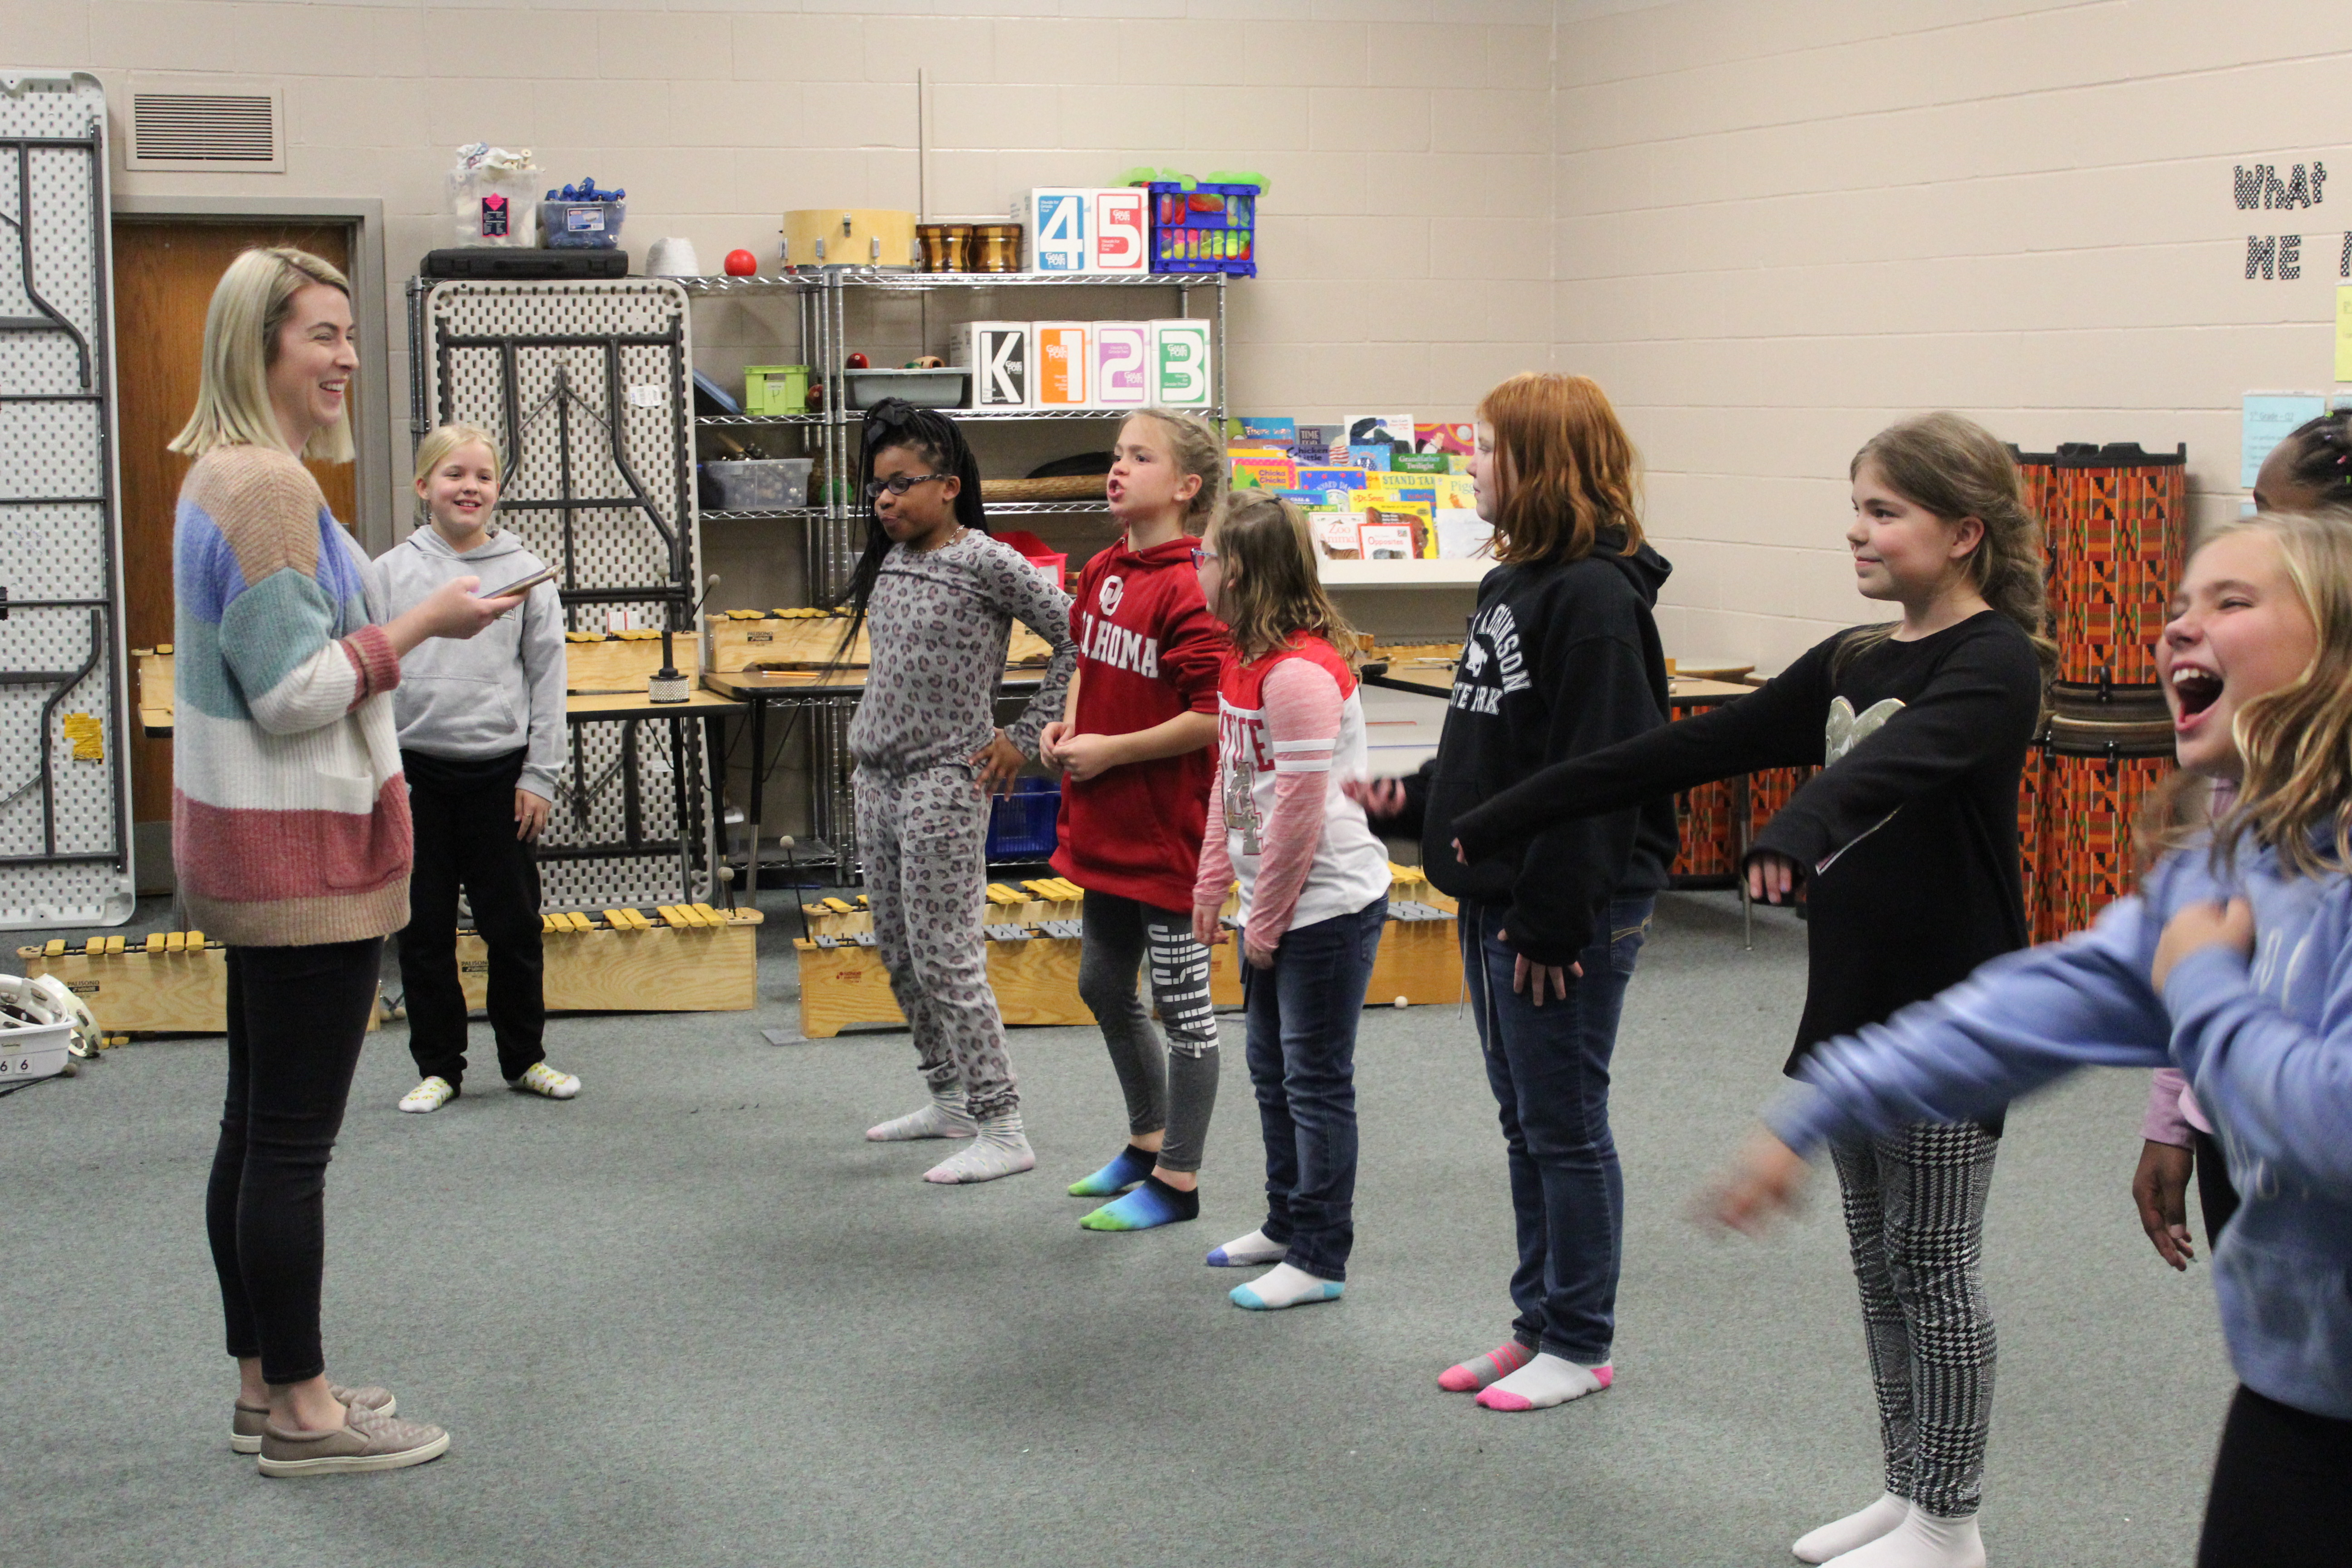 Students learn to dance through dance club